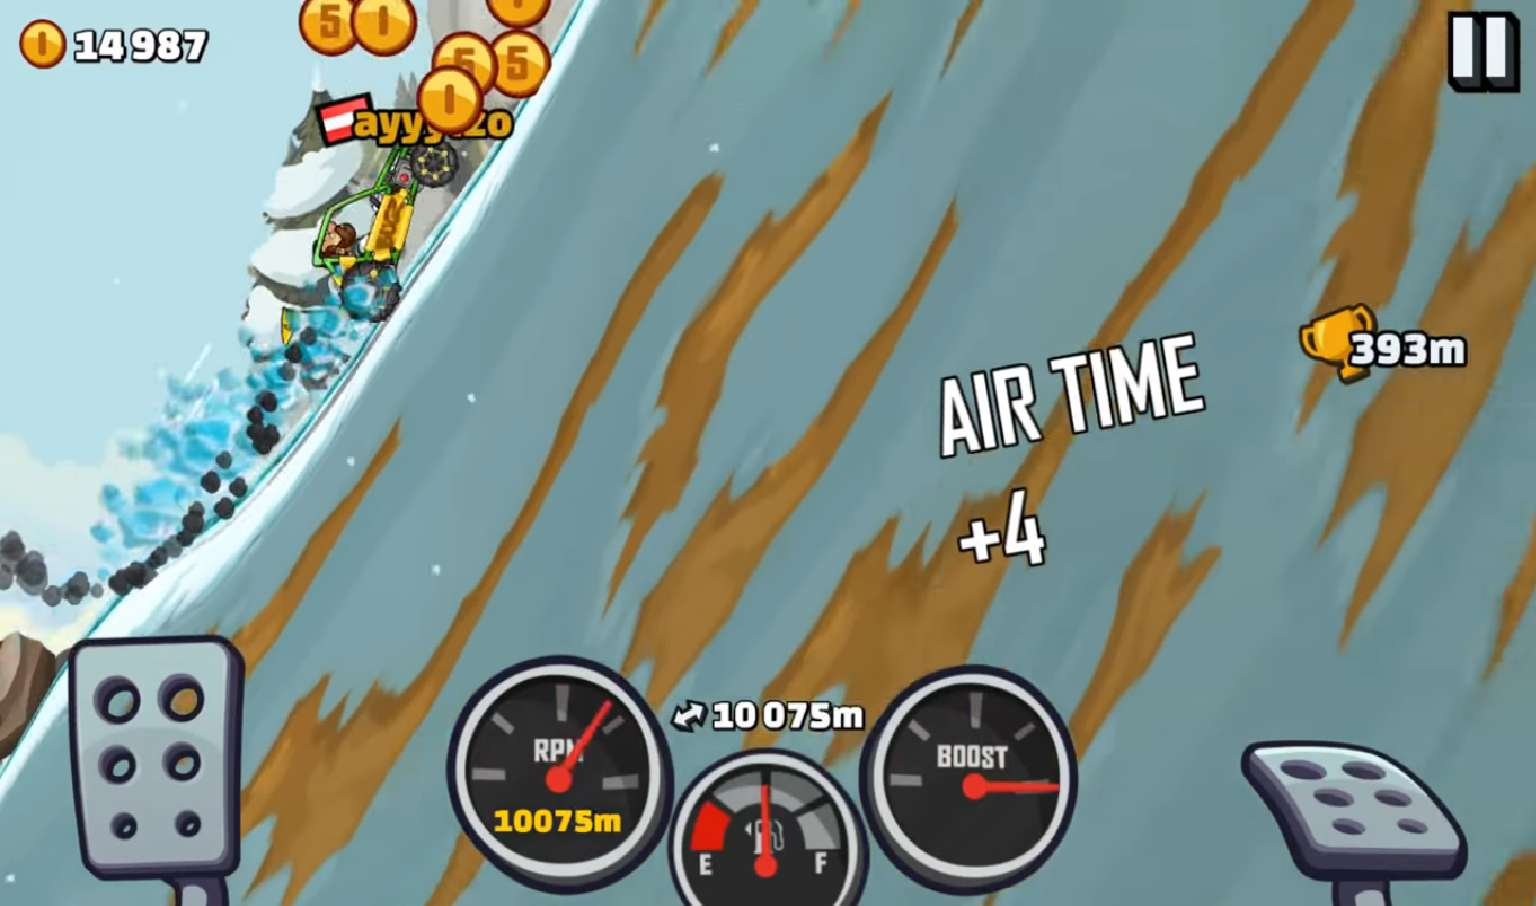 Hill Climb Racing 2 Updated To Version 1.33.3 And Brought Back An Old Favorite Game Mechanic